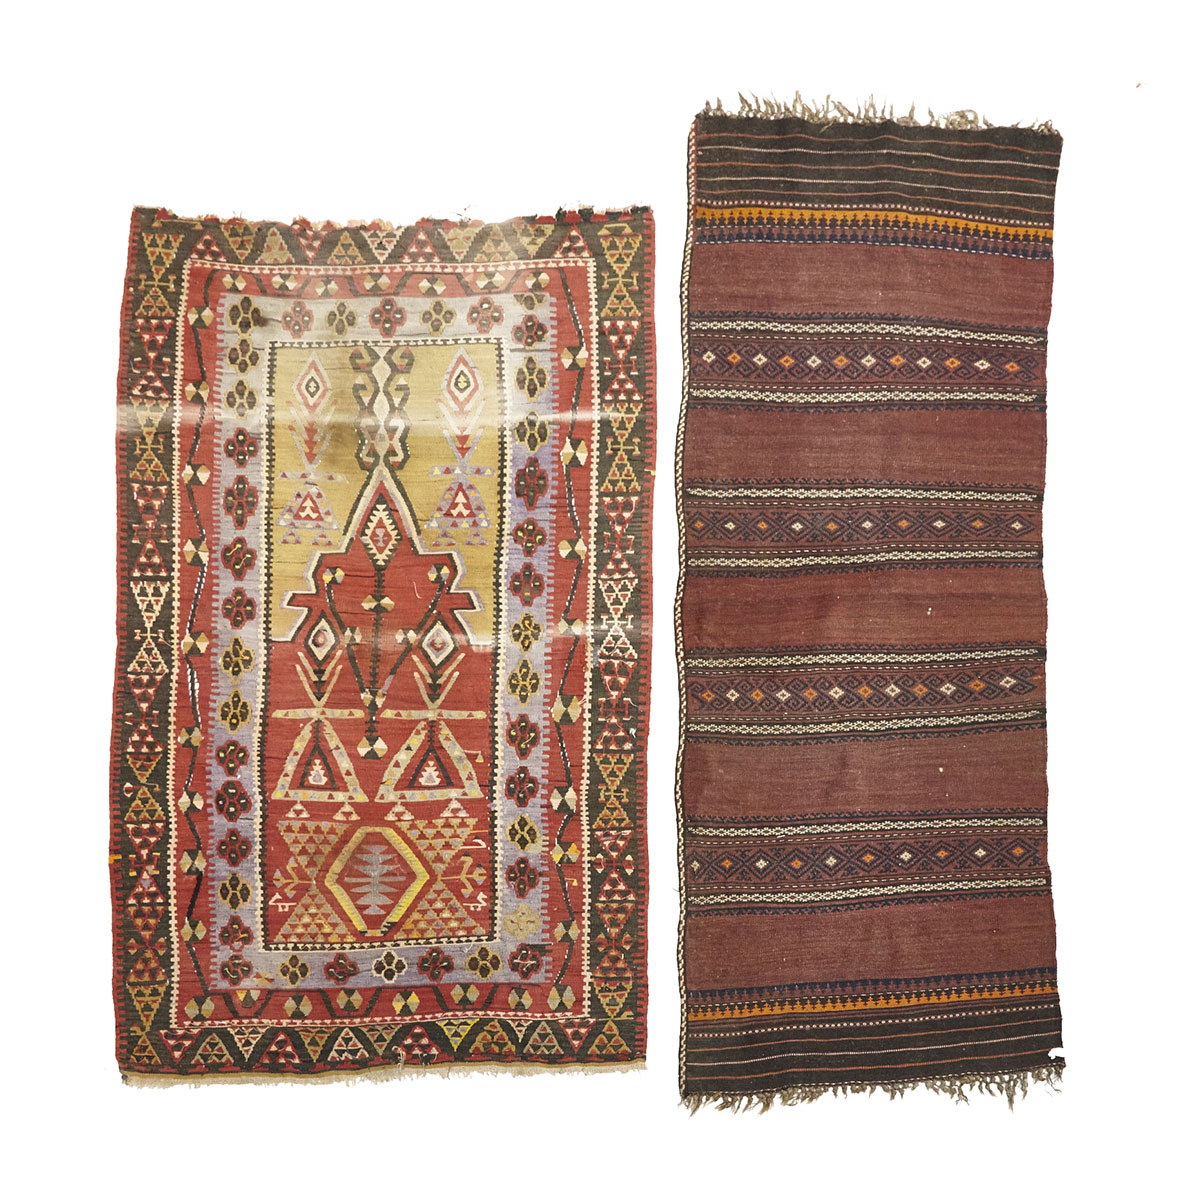 Two Kelim Rugs, mid 20th century